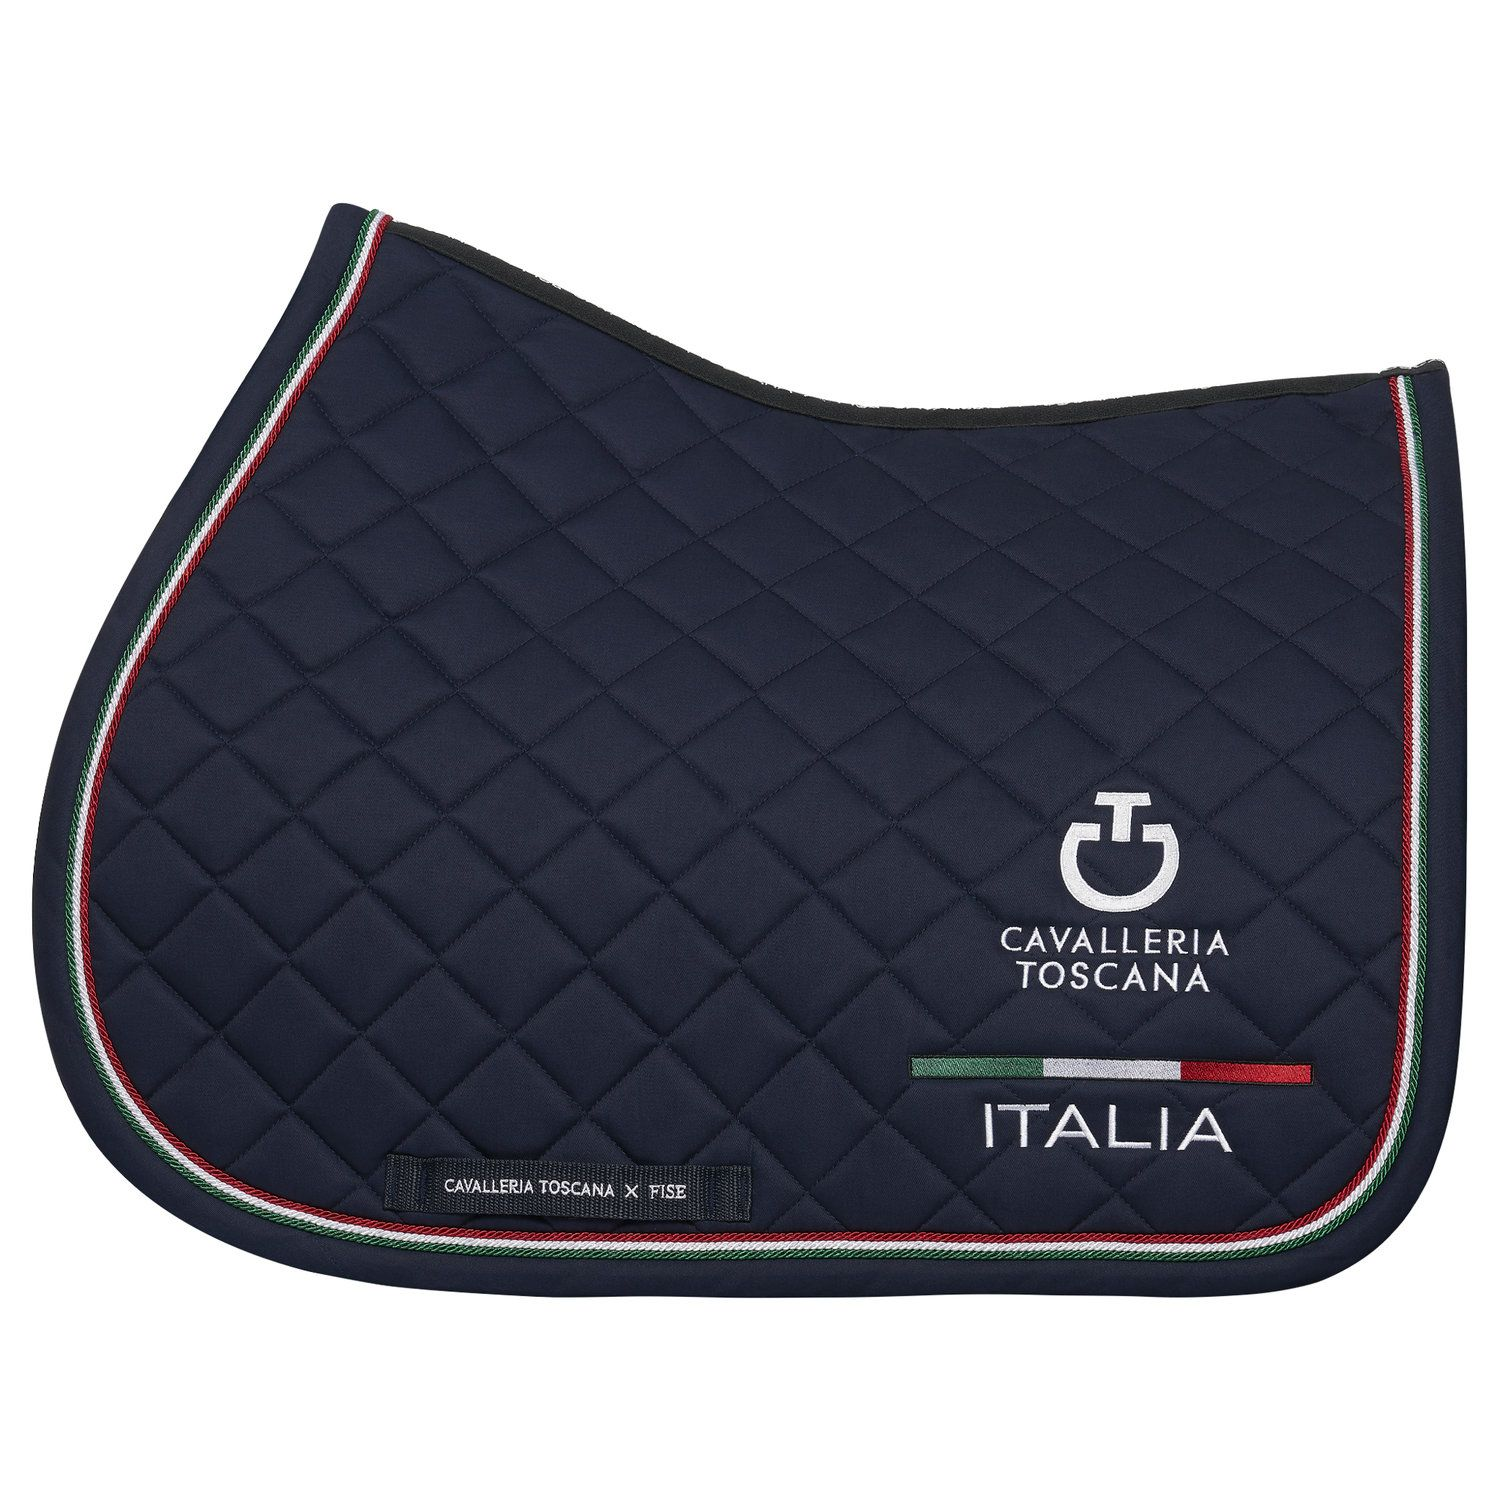 FISE jumping saddle pad with Italian flag piping